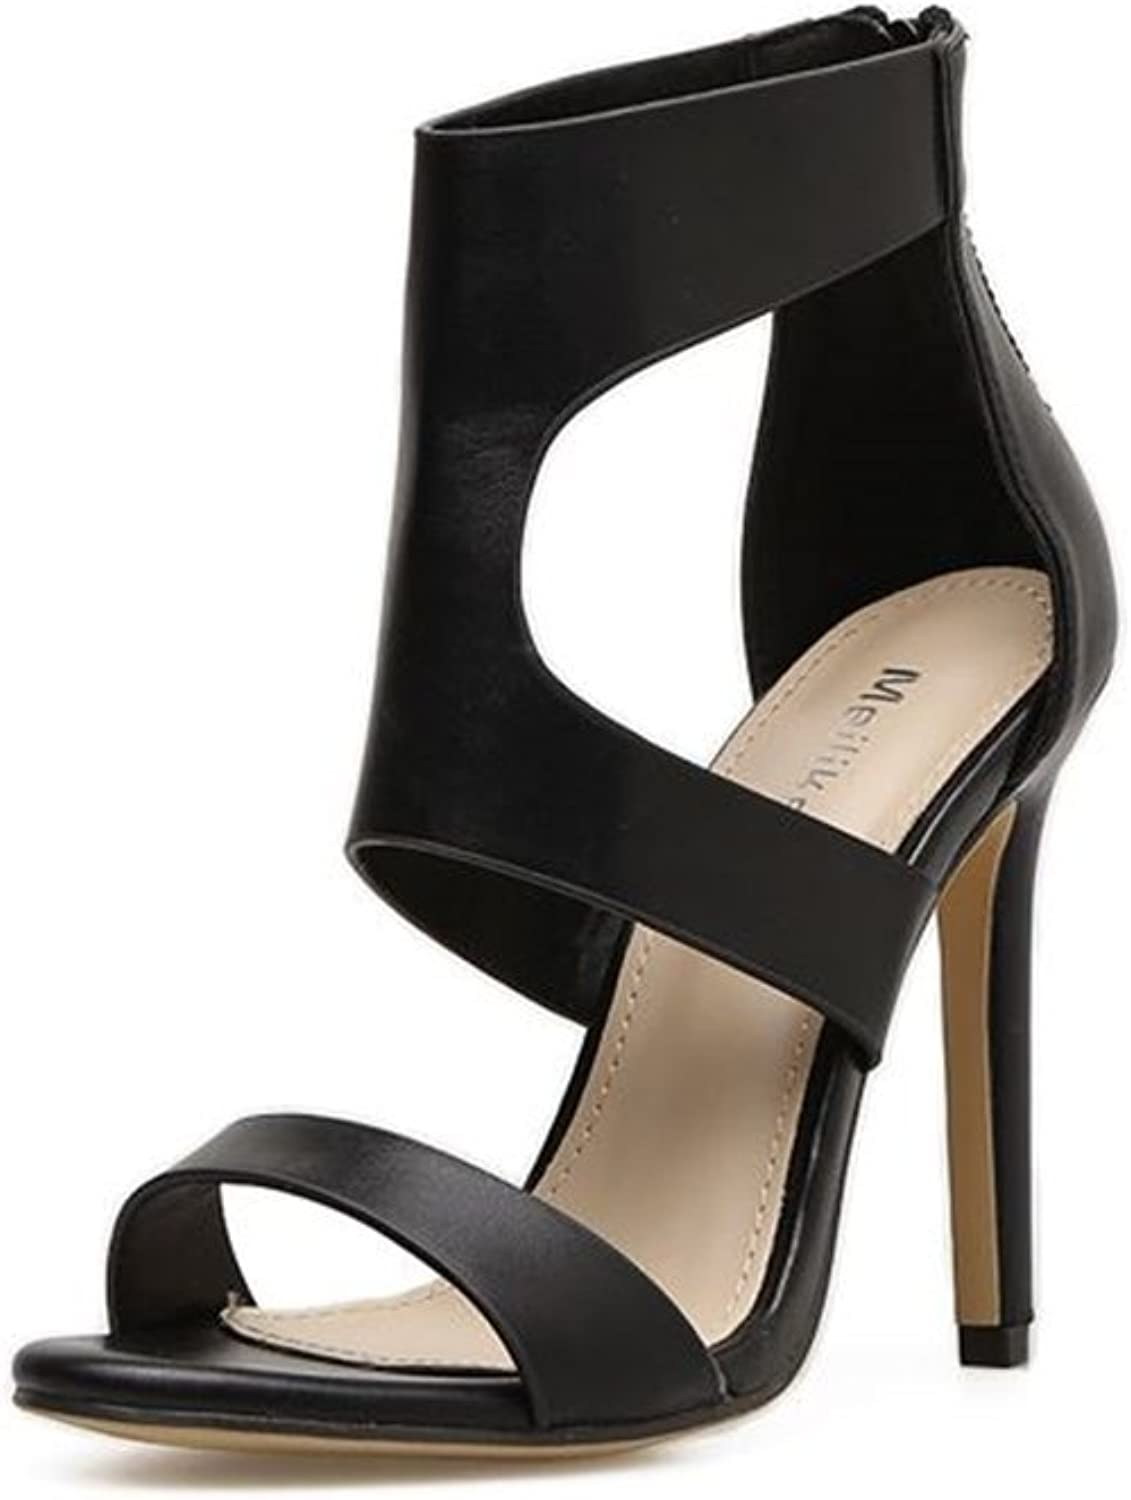 Fancyww Women Ankle Heels Sexy Peep Toe Platform Pumps shoes with Zip